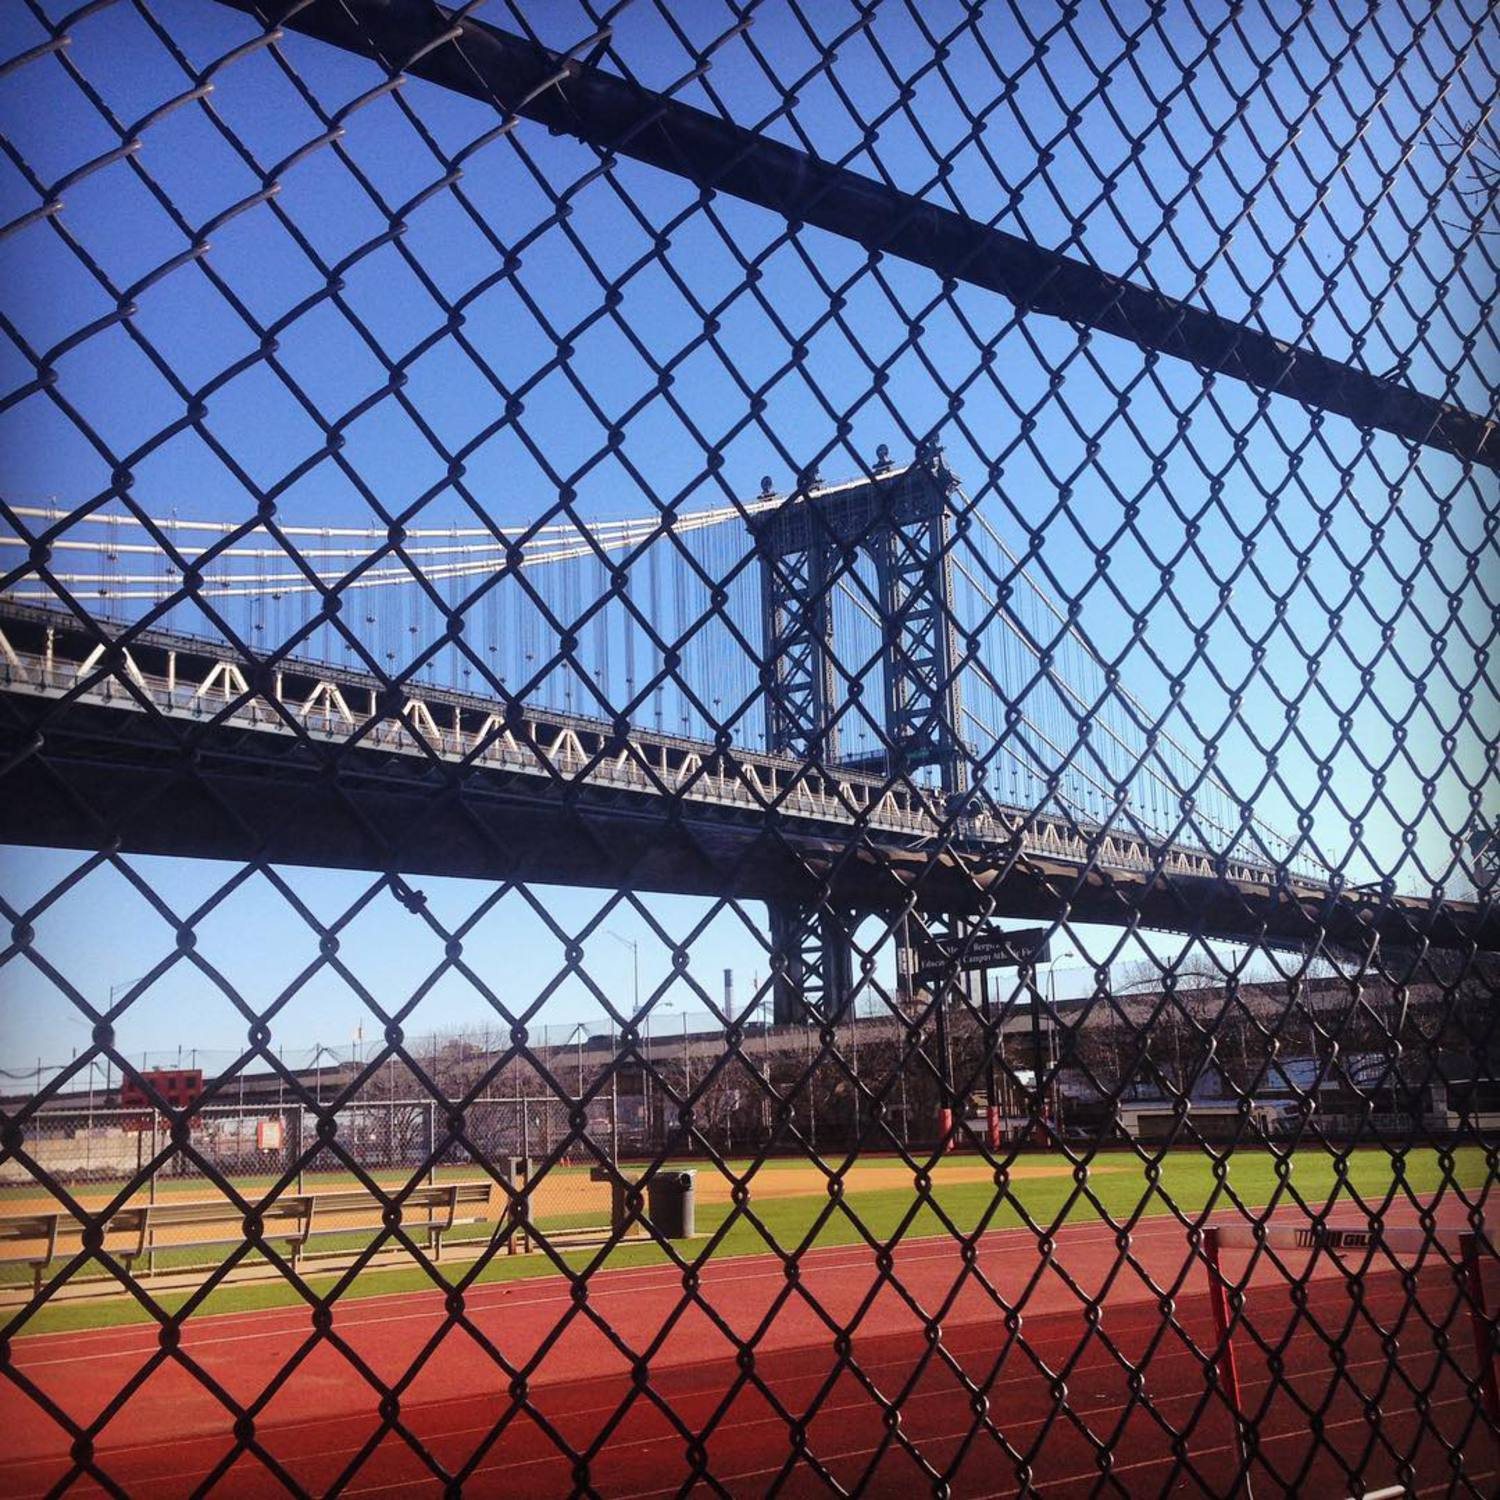 #nyc #manhattanbridge #instagood #holidays #vscocam #traveller #travelgram #instatravel #mytravelgram #adventure #travel